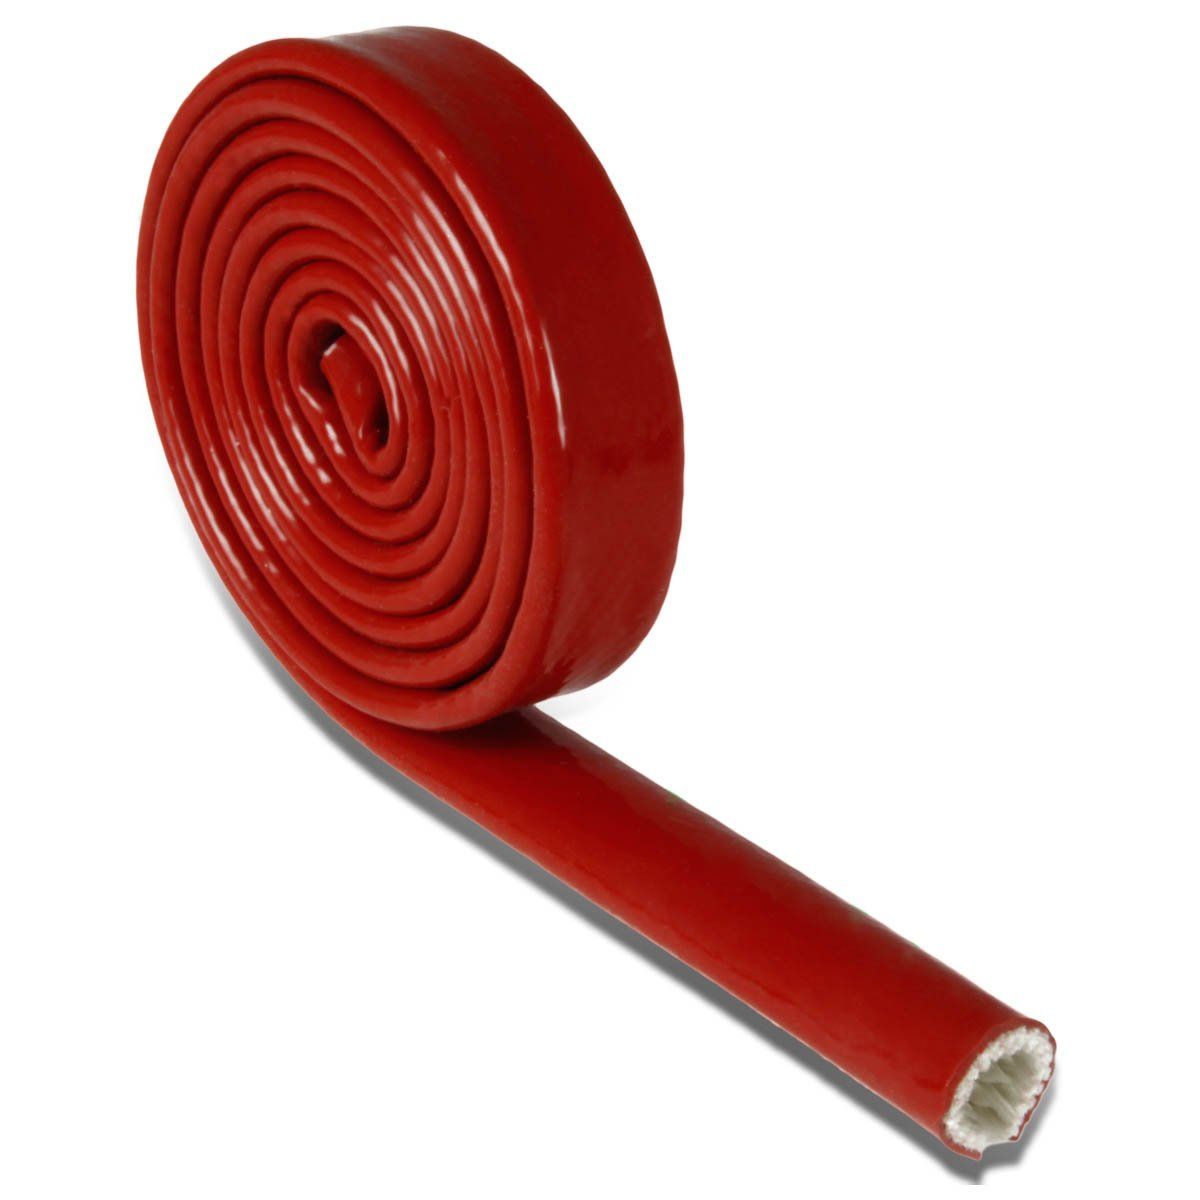 25mm X 10-Ft Red Heat-Shielded Fire Sleeve for Oil Fuel Lines /& Electrical Wiring